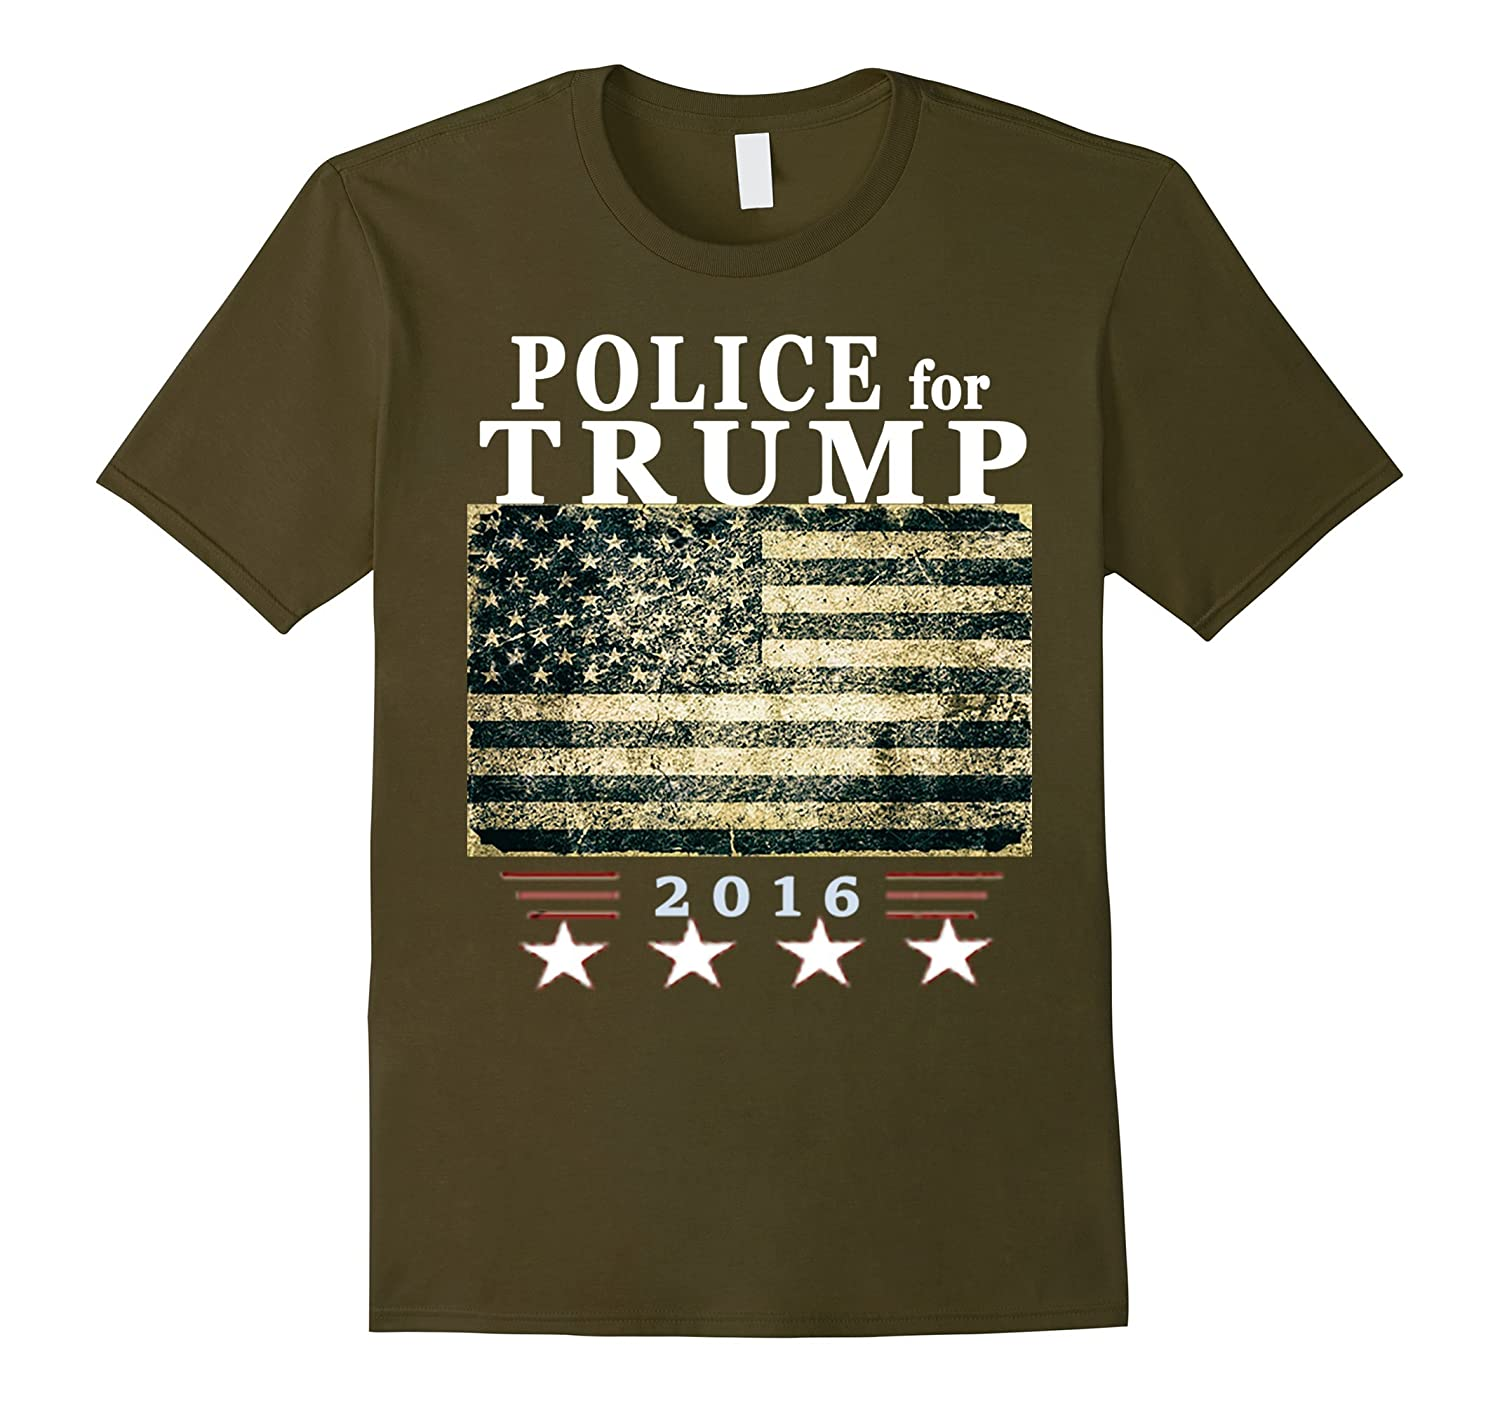 Police for Trump Shirt - Law Enforcement for Trump